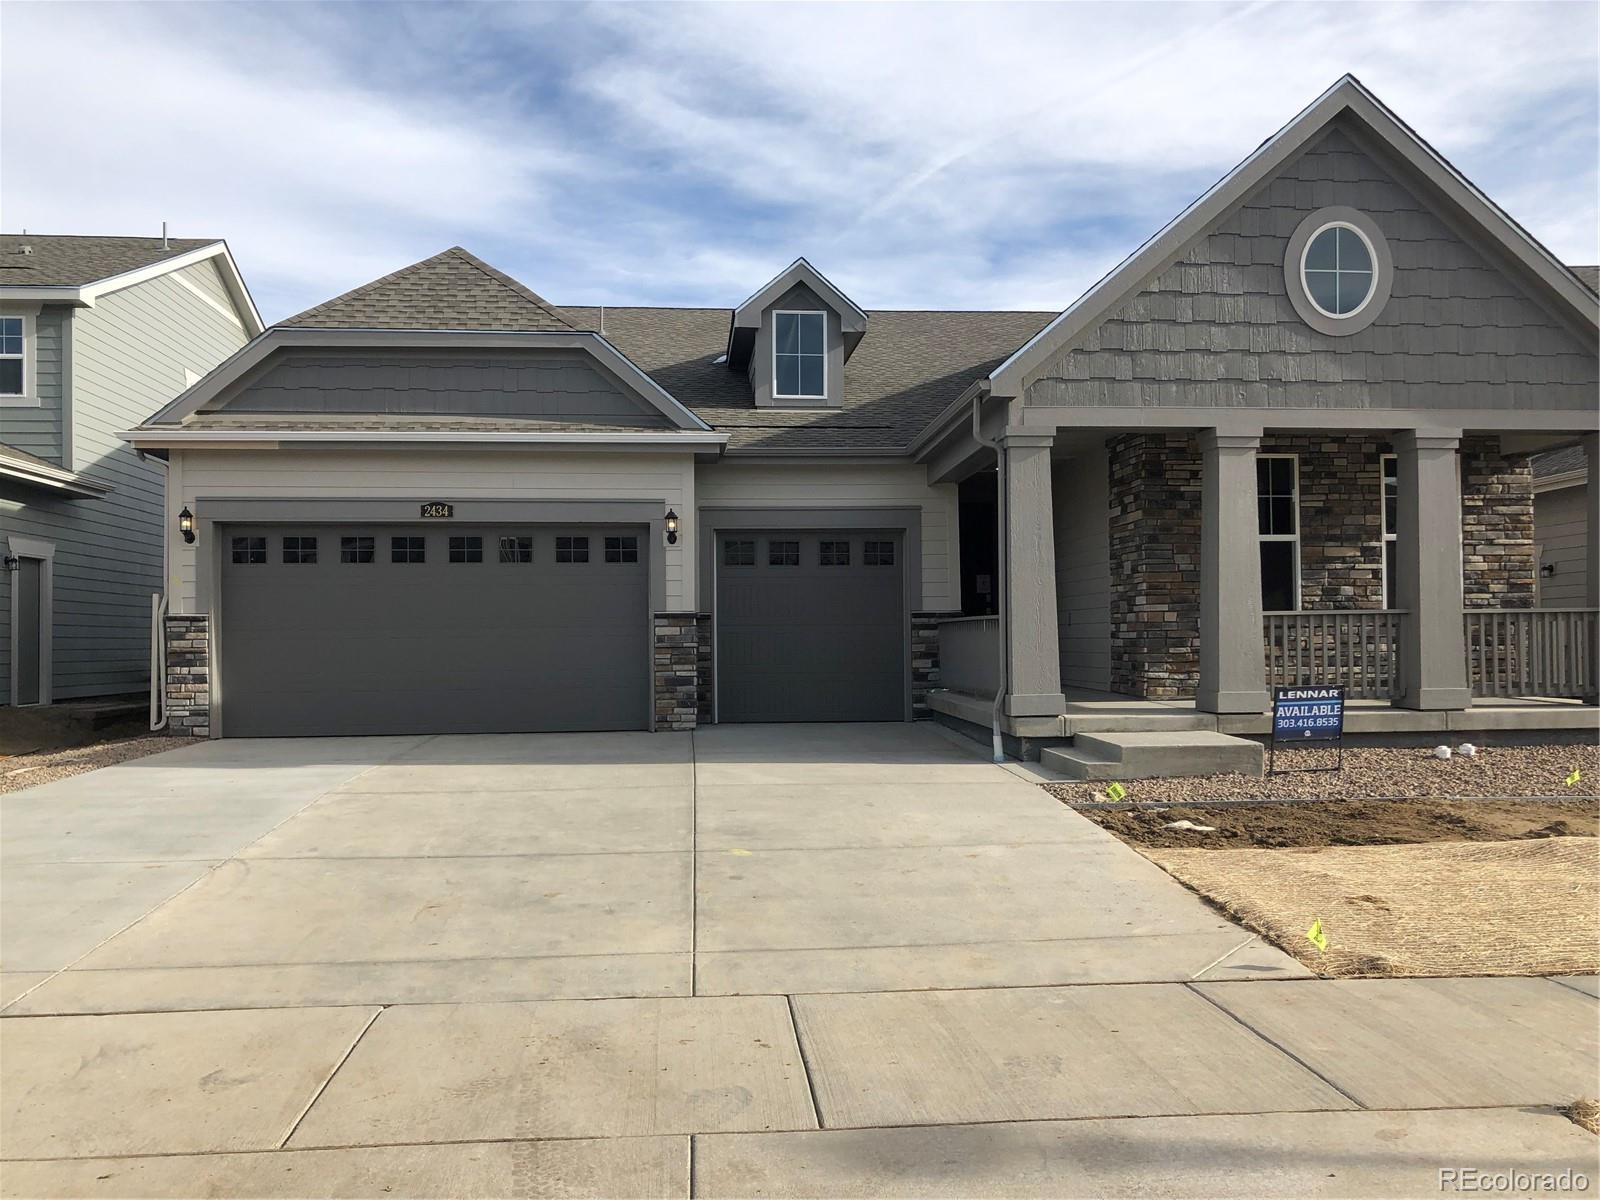 """Available February 2020! Colorado living at its finest! Backing to open space, this gorgeous Somerton ranch style home in Provenance features 4 beds, 3 full baths, great room, formal dining room, spacious kitchen, & 3 car garage. Hardwood floors & carpet & tile, large breakfast nook and so much more. The large master has a 5-piece bathroom including separate shower, garden tub & huge walk-in closet. The gorgeous kitchen is open & features stainless appliances, island & 42"""" cabinets. An open basement is waiting for future expansion. Conveniently located close to shopping, dining, entertainment, transportation and acres of parks/trails and other great outdoor opportunities. Easy commute to Downtown Denver, Boulder, Golden and beyond. Don't wait - this home will sell quickly. Lives large and luxurious. Come see why time and again Lennar stands above the rest. Welcome Home!!!"""